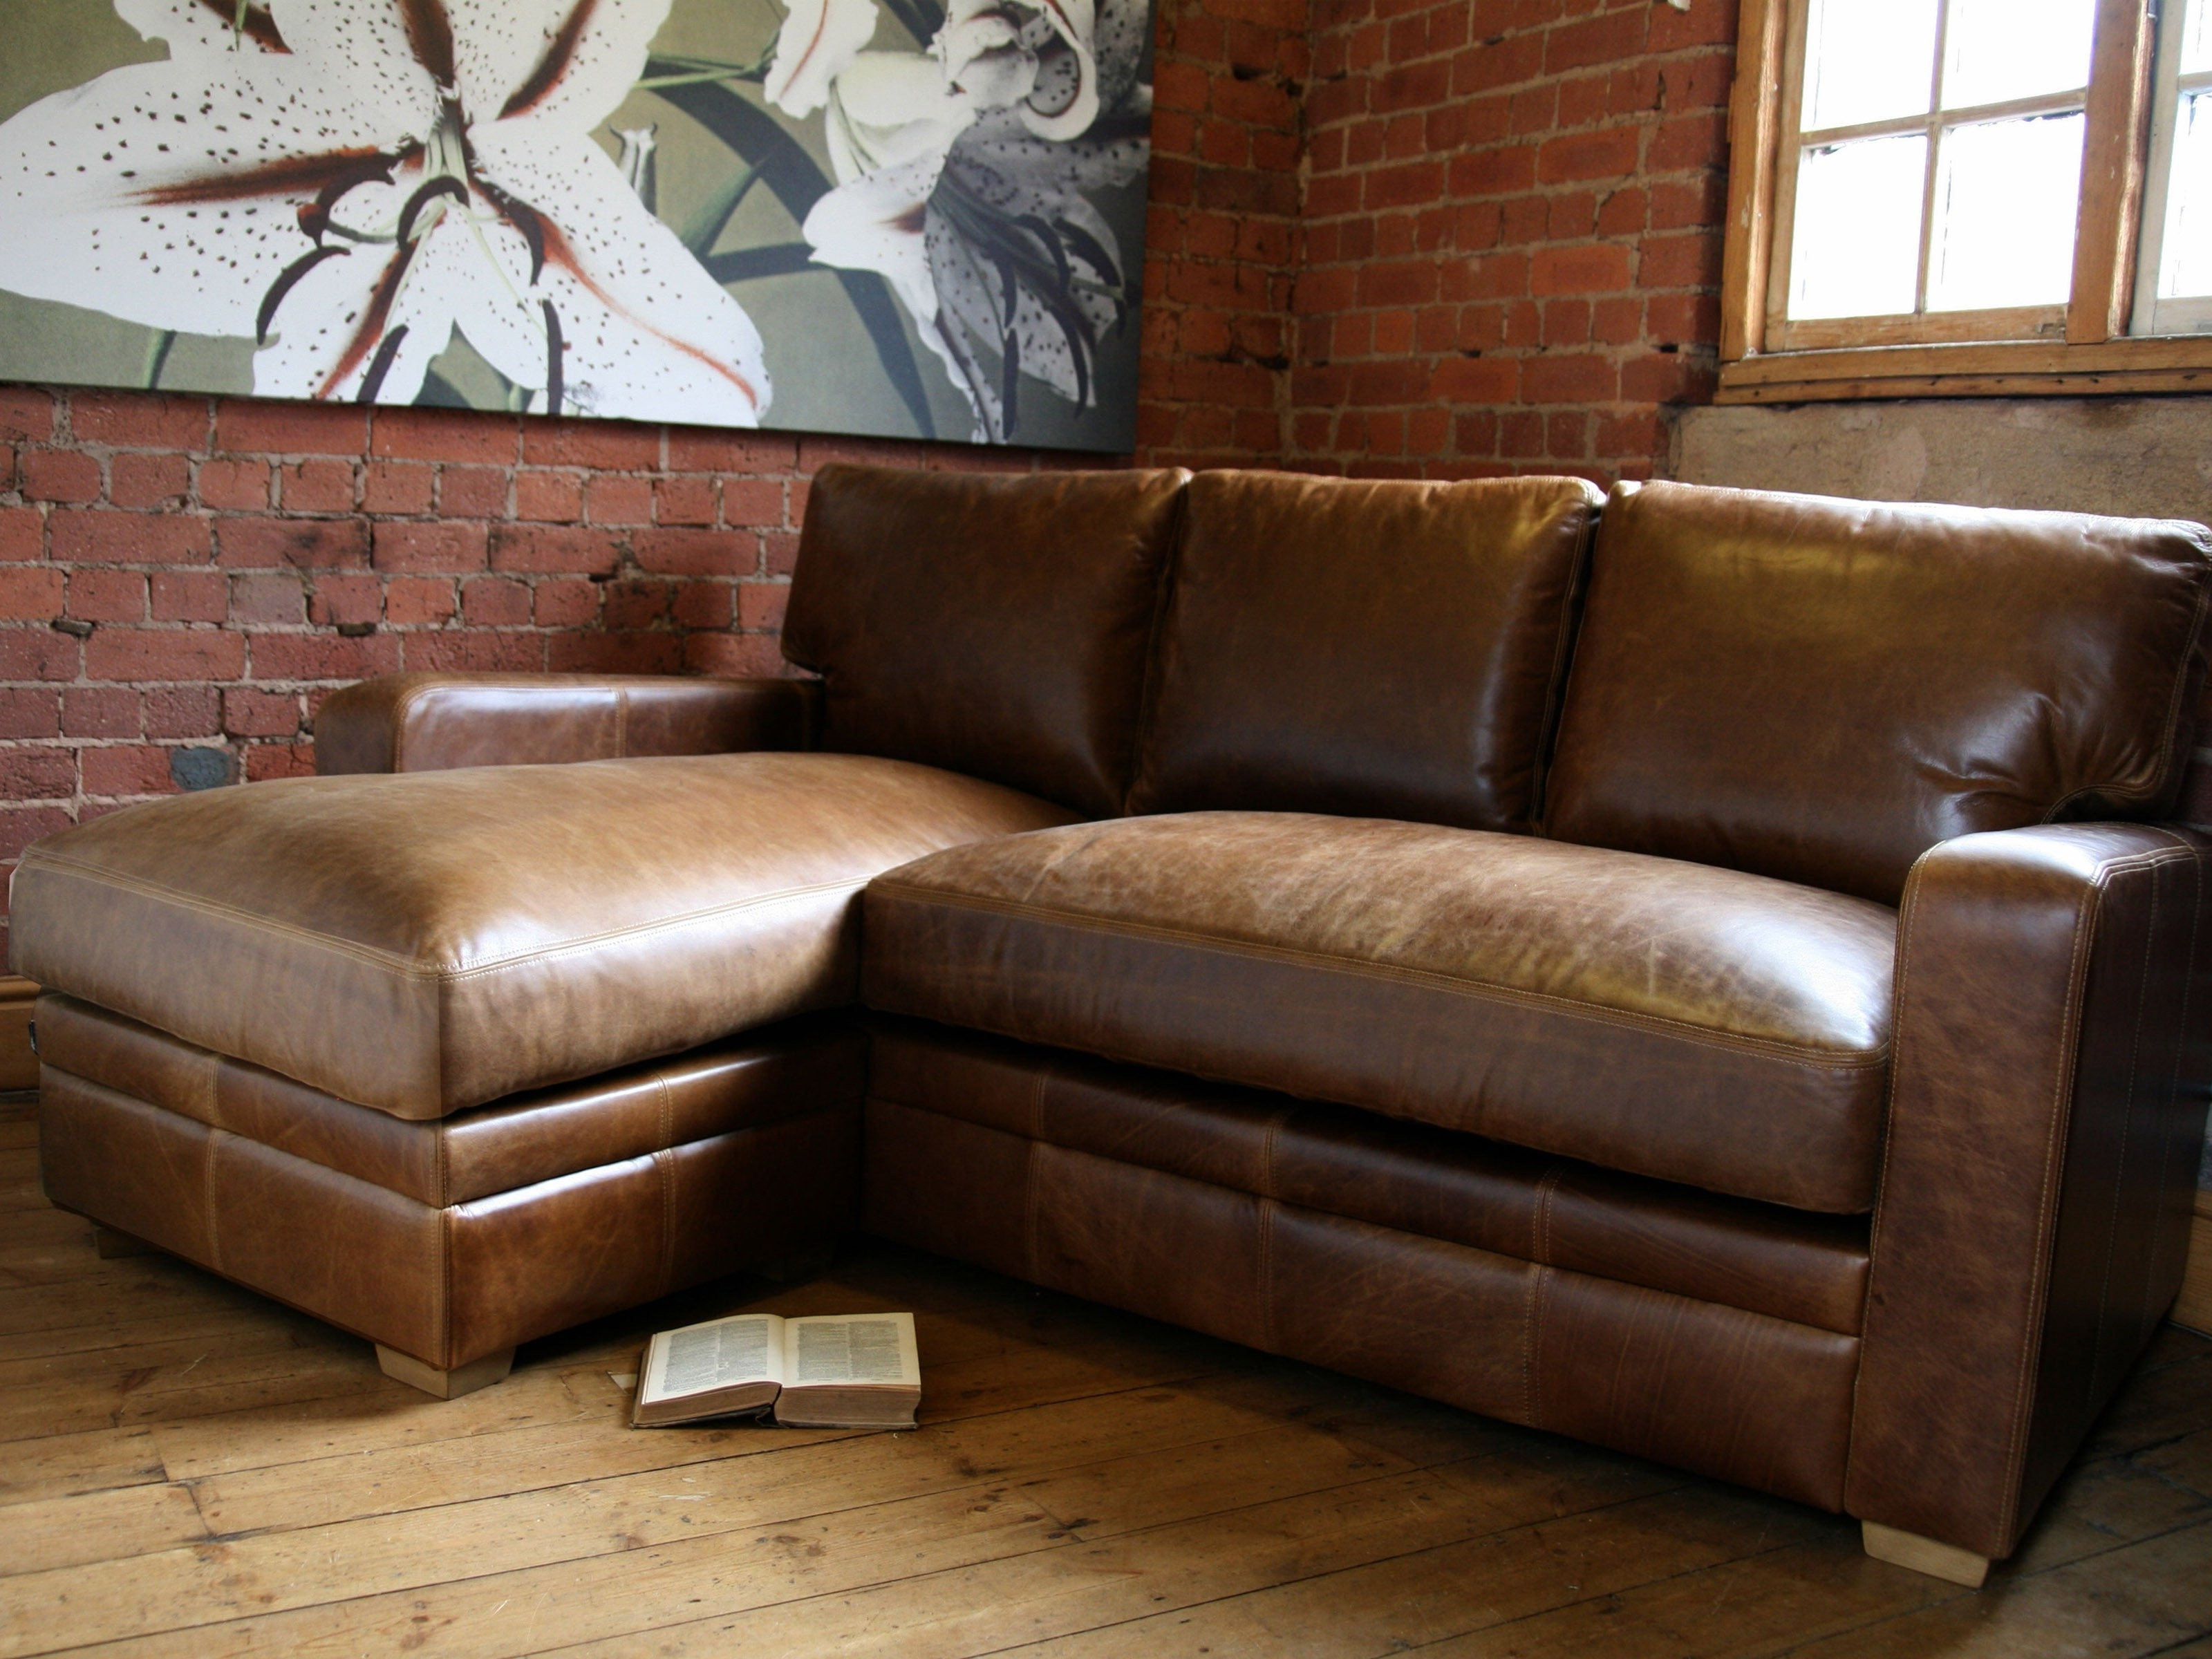 Most Current Leather Chaise Lounge Sofas With Regard To Sofa ~ Luxury Leather Sofa With Chaise Lounge Great Leather Chaise (View 9 of 15)